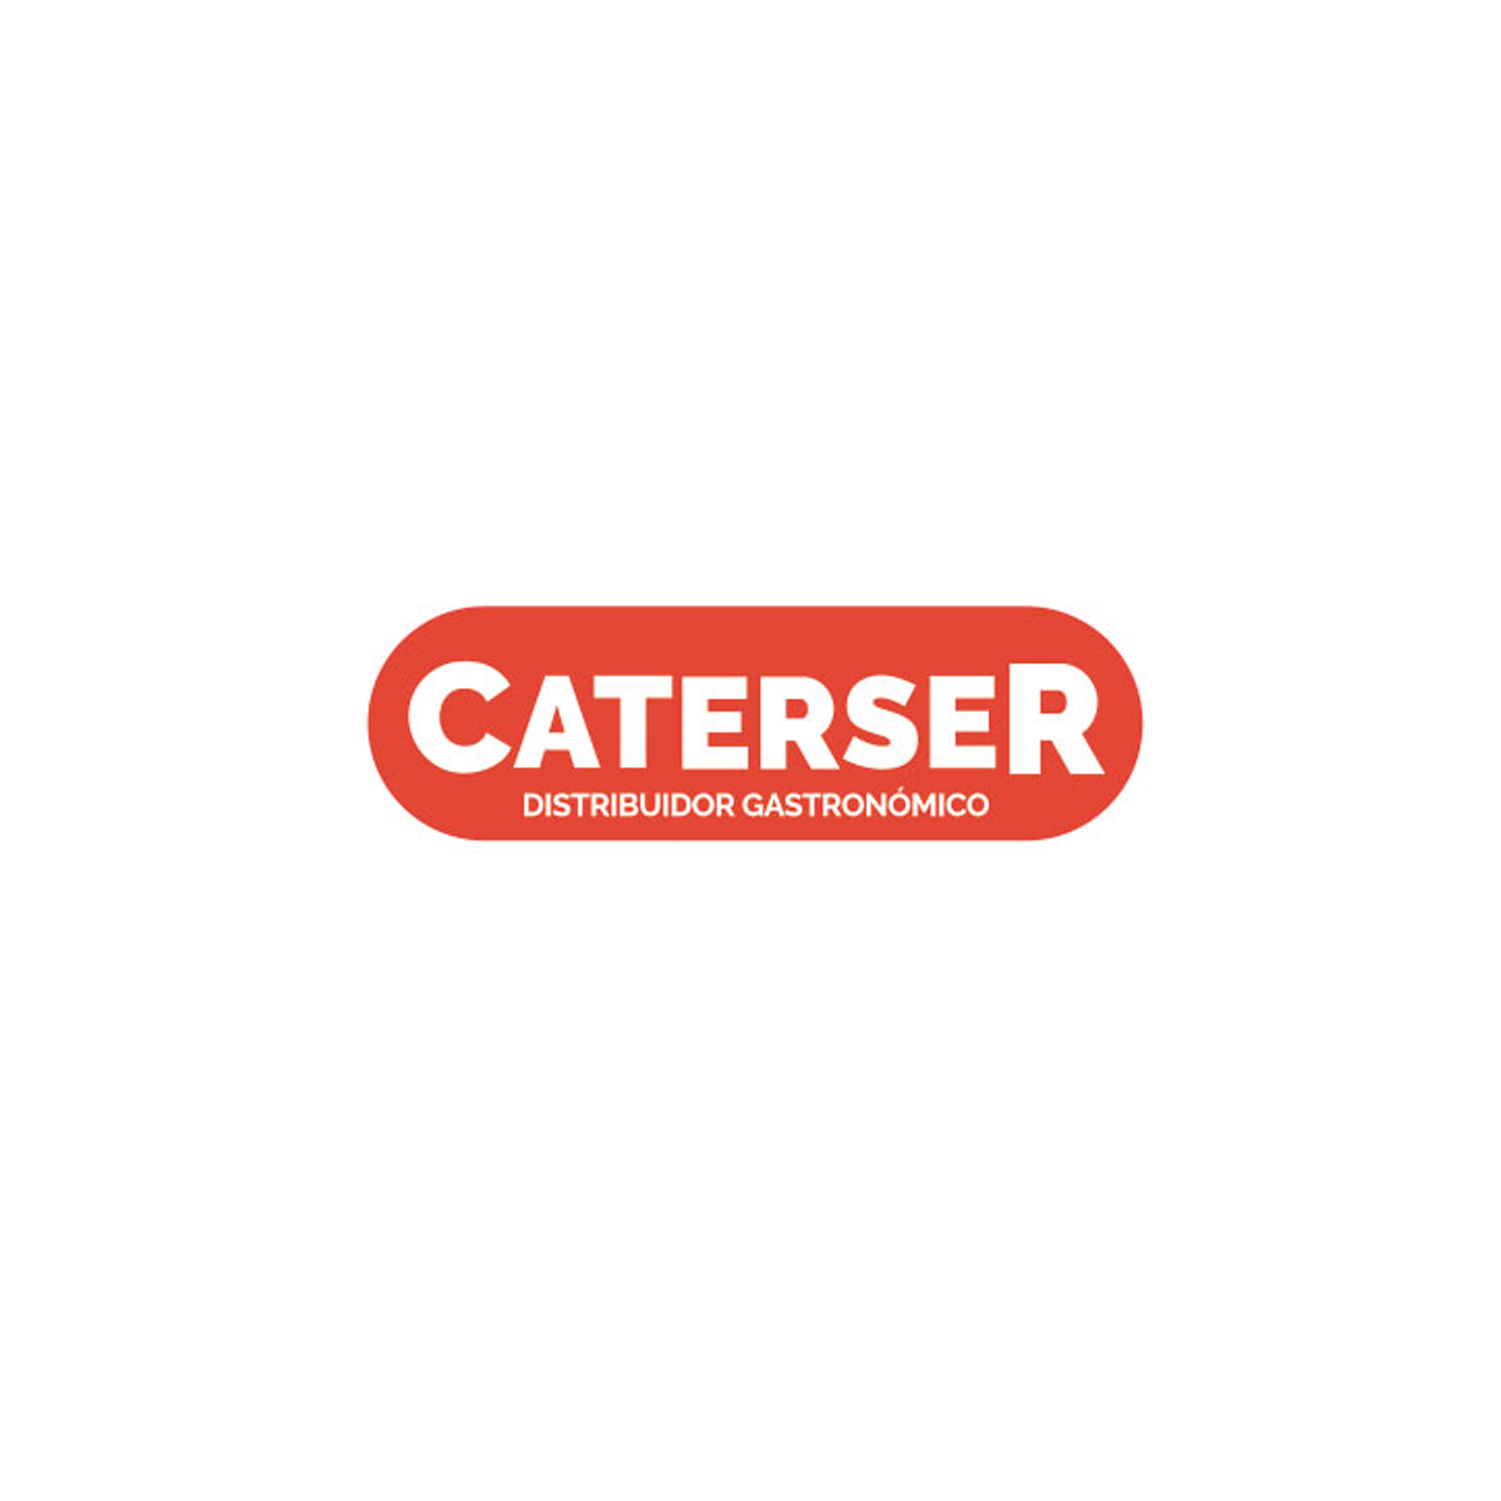 Caterser